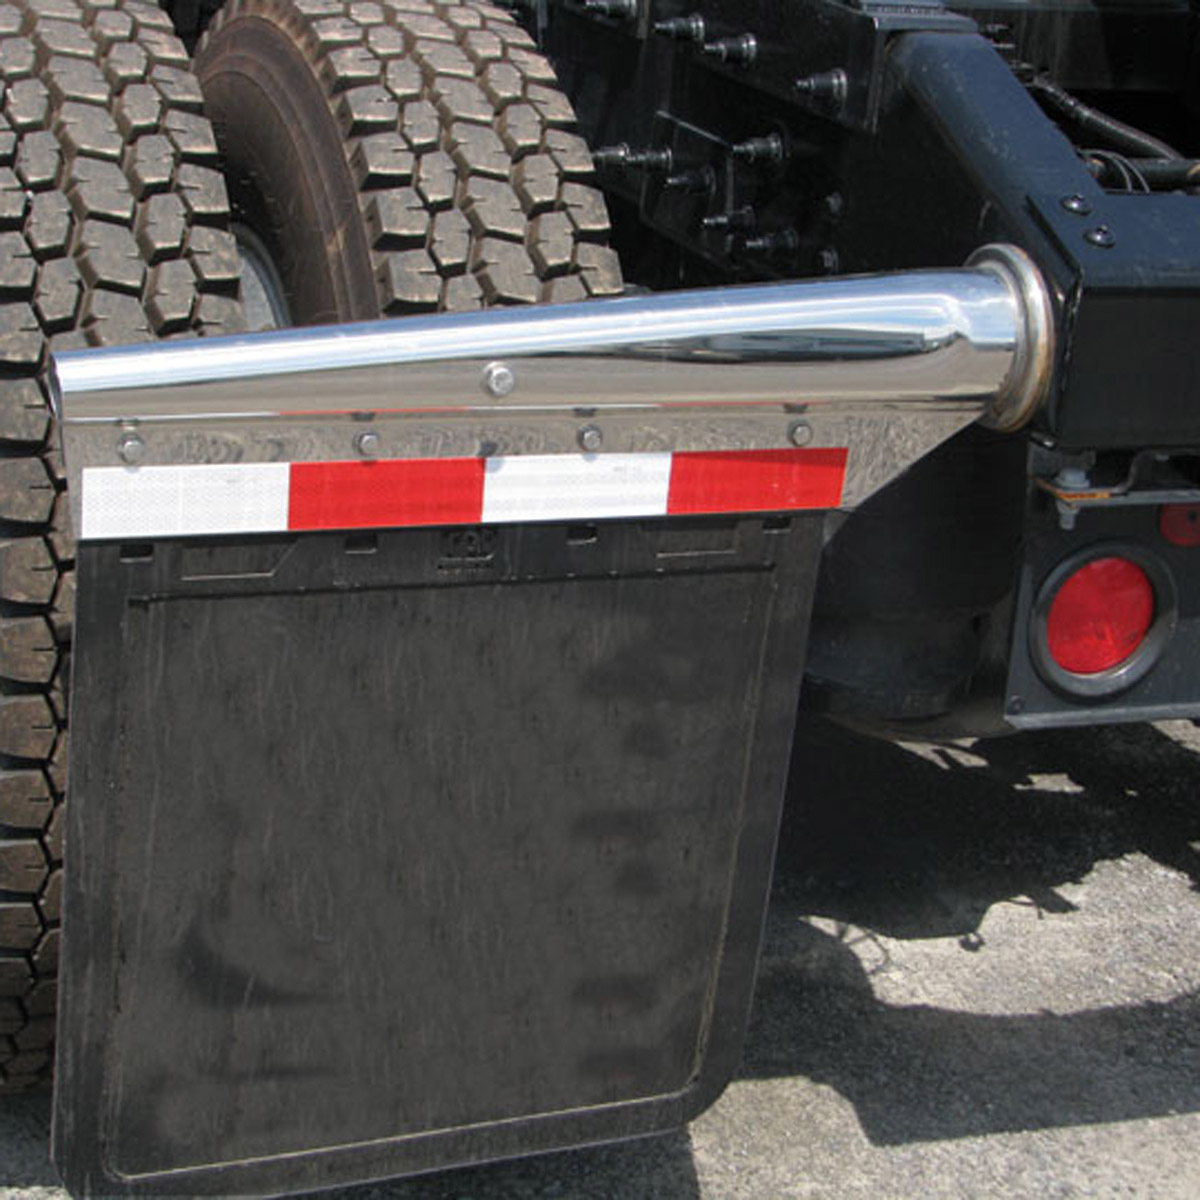 Western Star 4900 >> Mud Flap Hangers - Mud Flap Hangers & Accessories ...